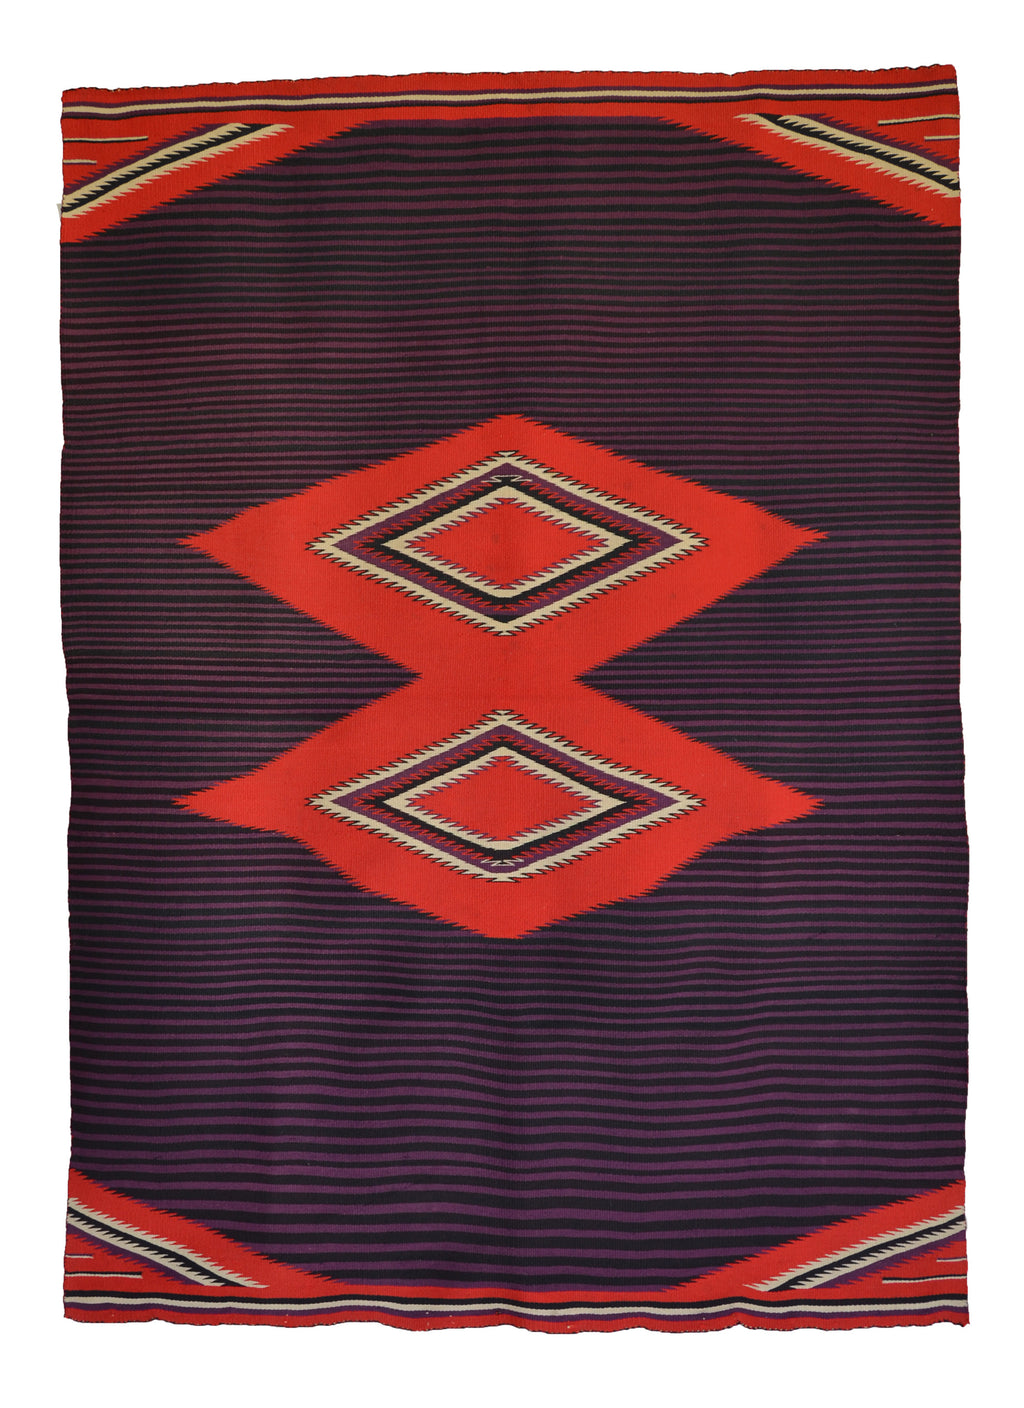 Moki Navajo Blanket : Historic : PC 259 - Getzwiller's Nizhoni Ranch Gallery